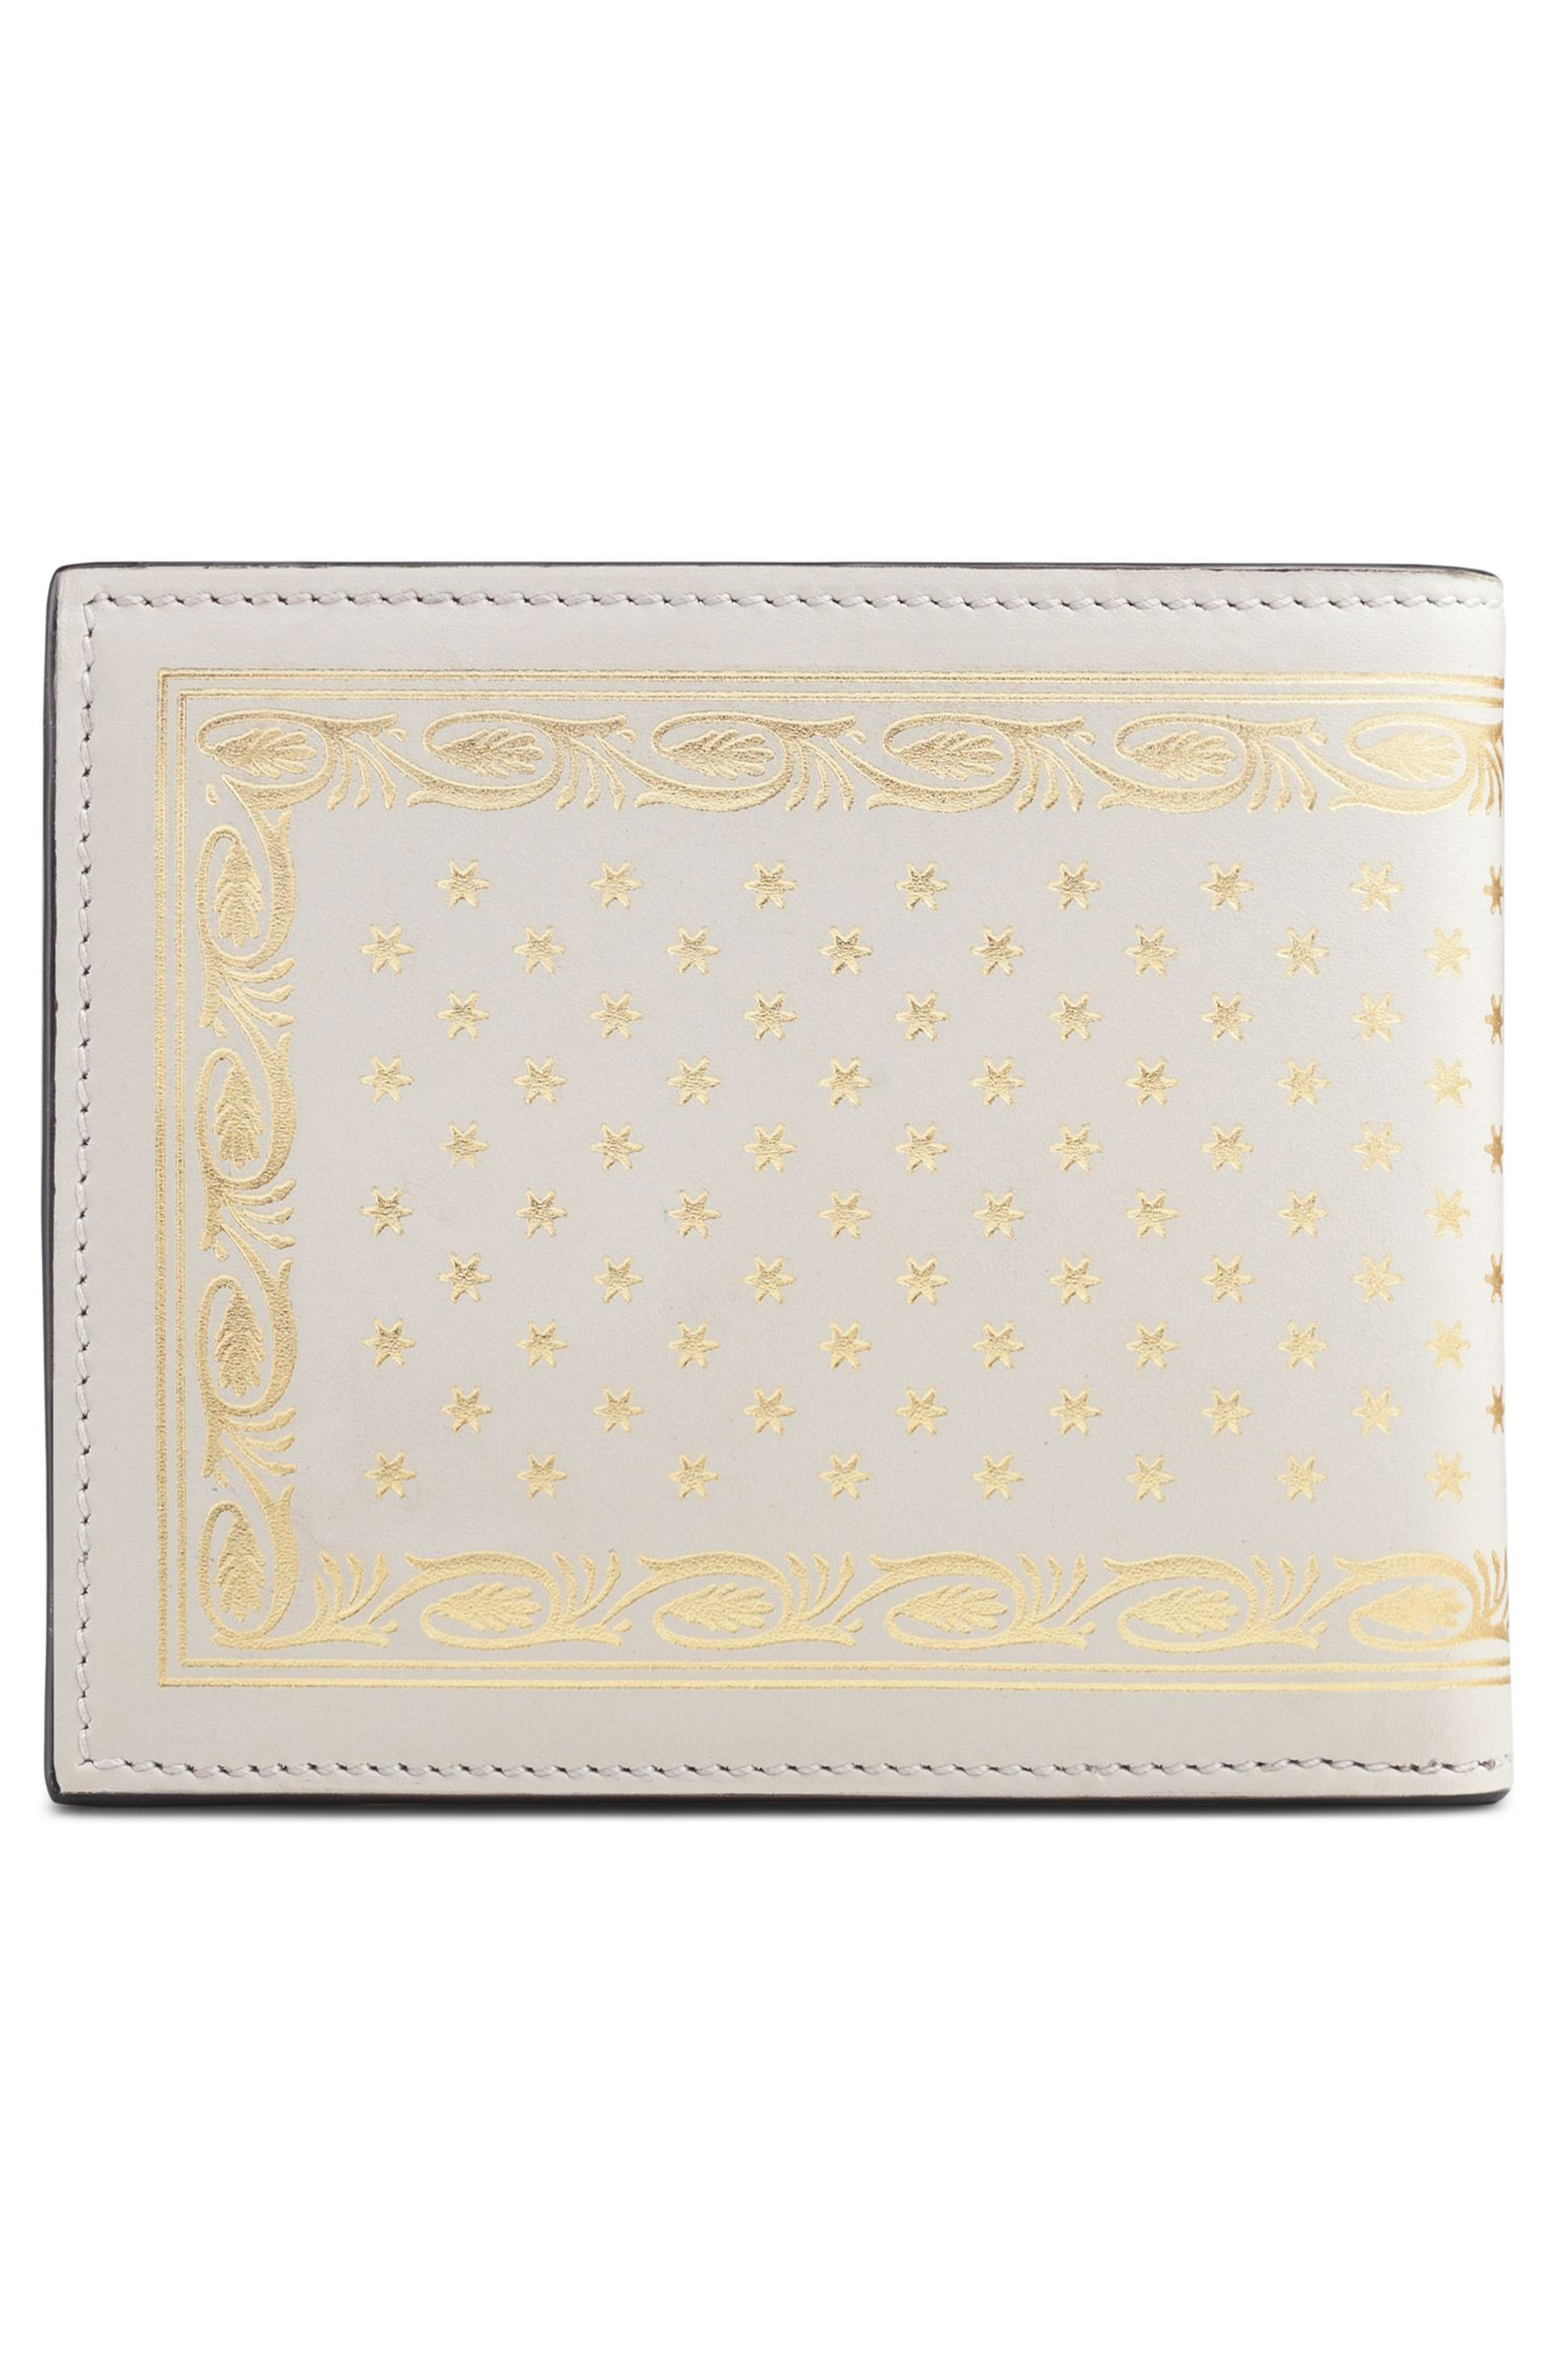 Guccy Print Leather Wallet,                             Alternate thumbnail 3, color,                             White/ Gold